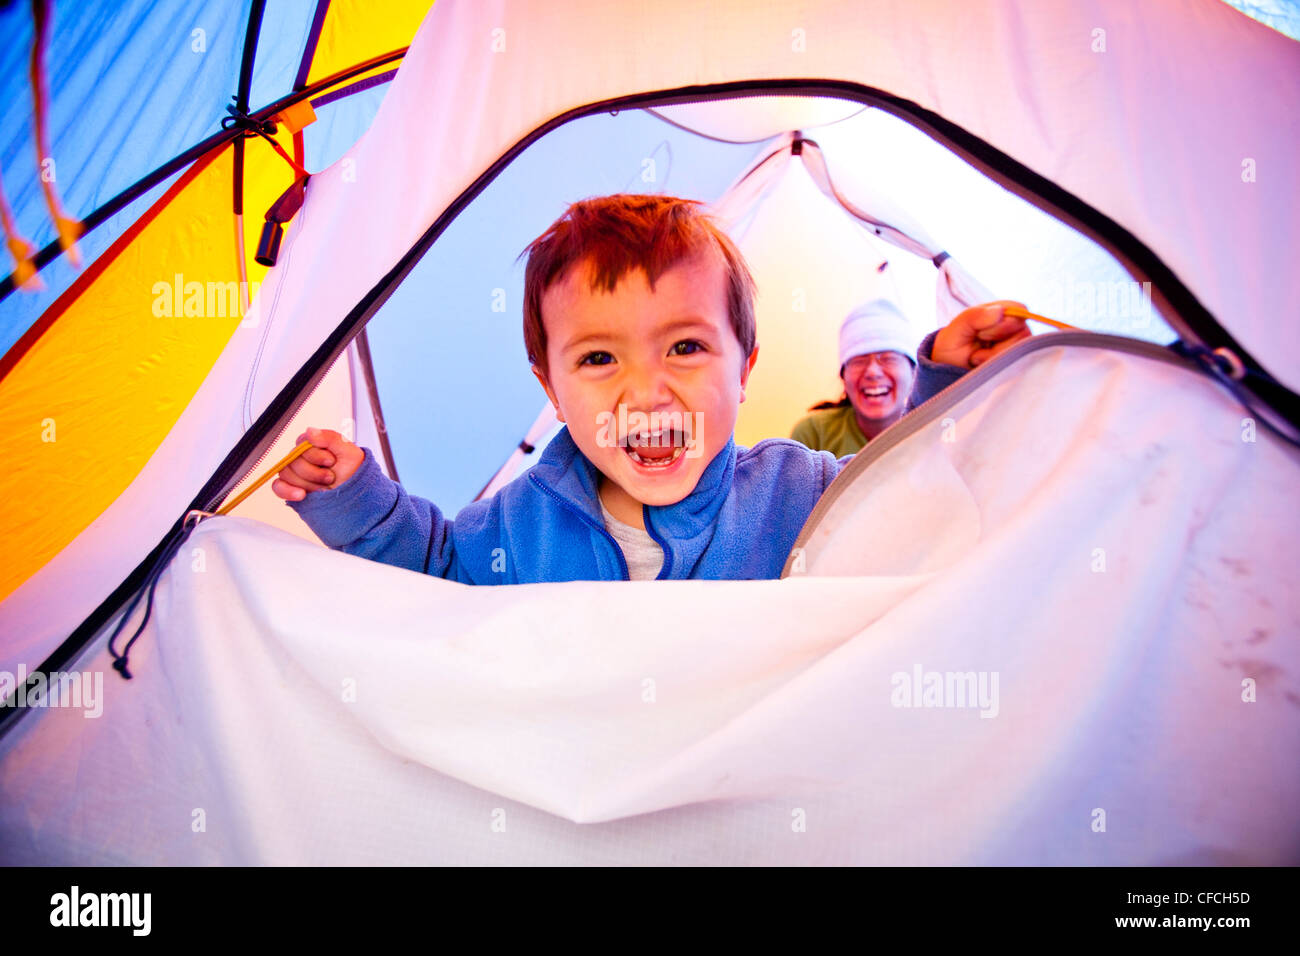 a little boy opens and closes the zippered tent door while he stands on a blue sleeping bag. The tent is orange - Stock Image